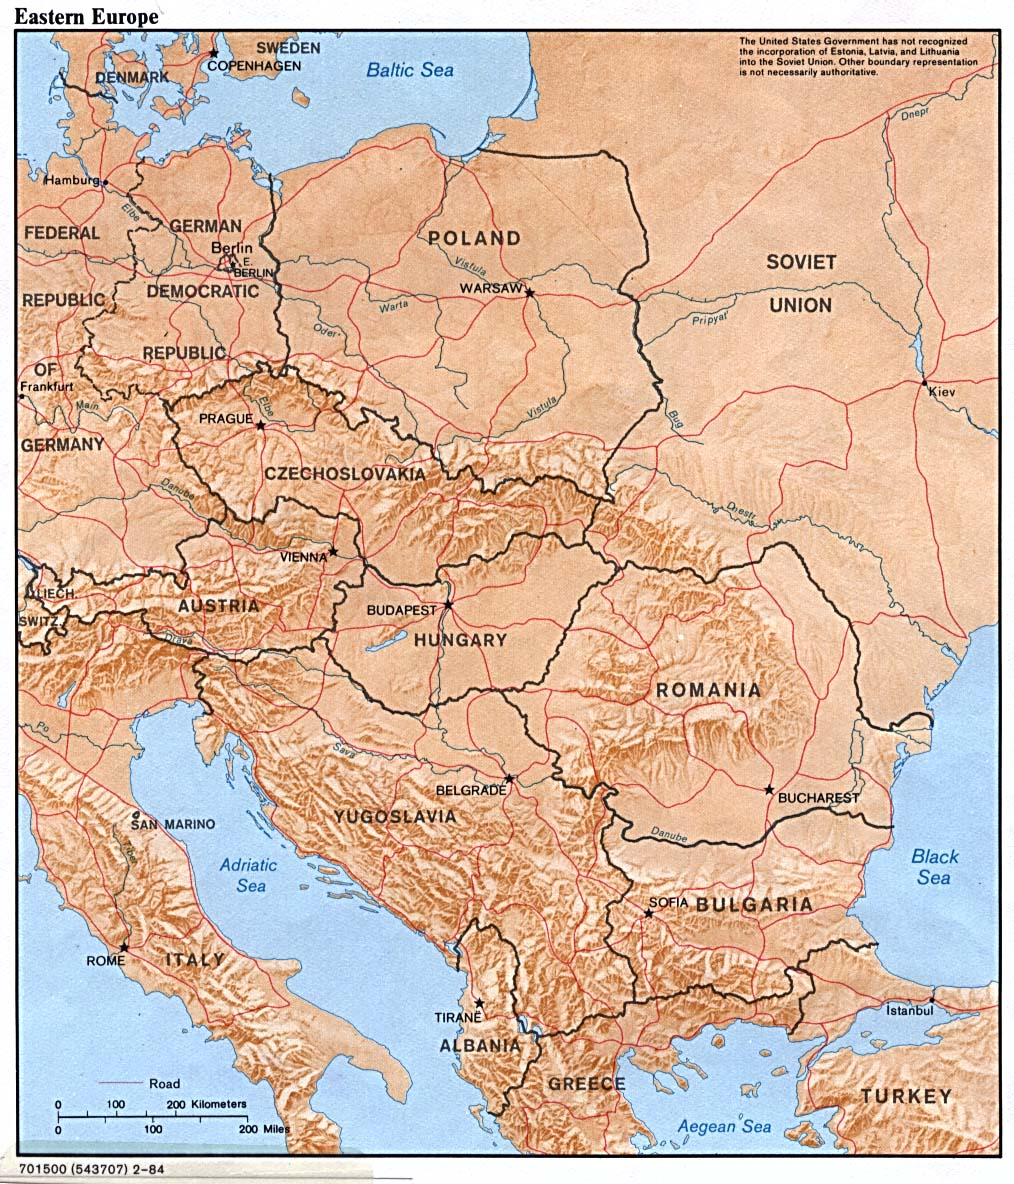 Eastern Europe physical map 1984 Full size